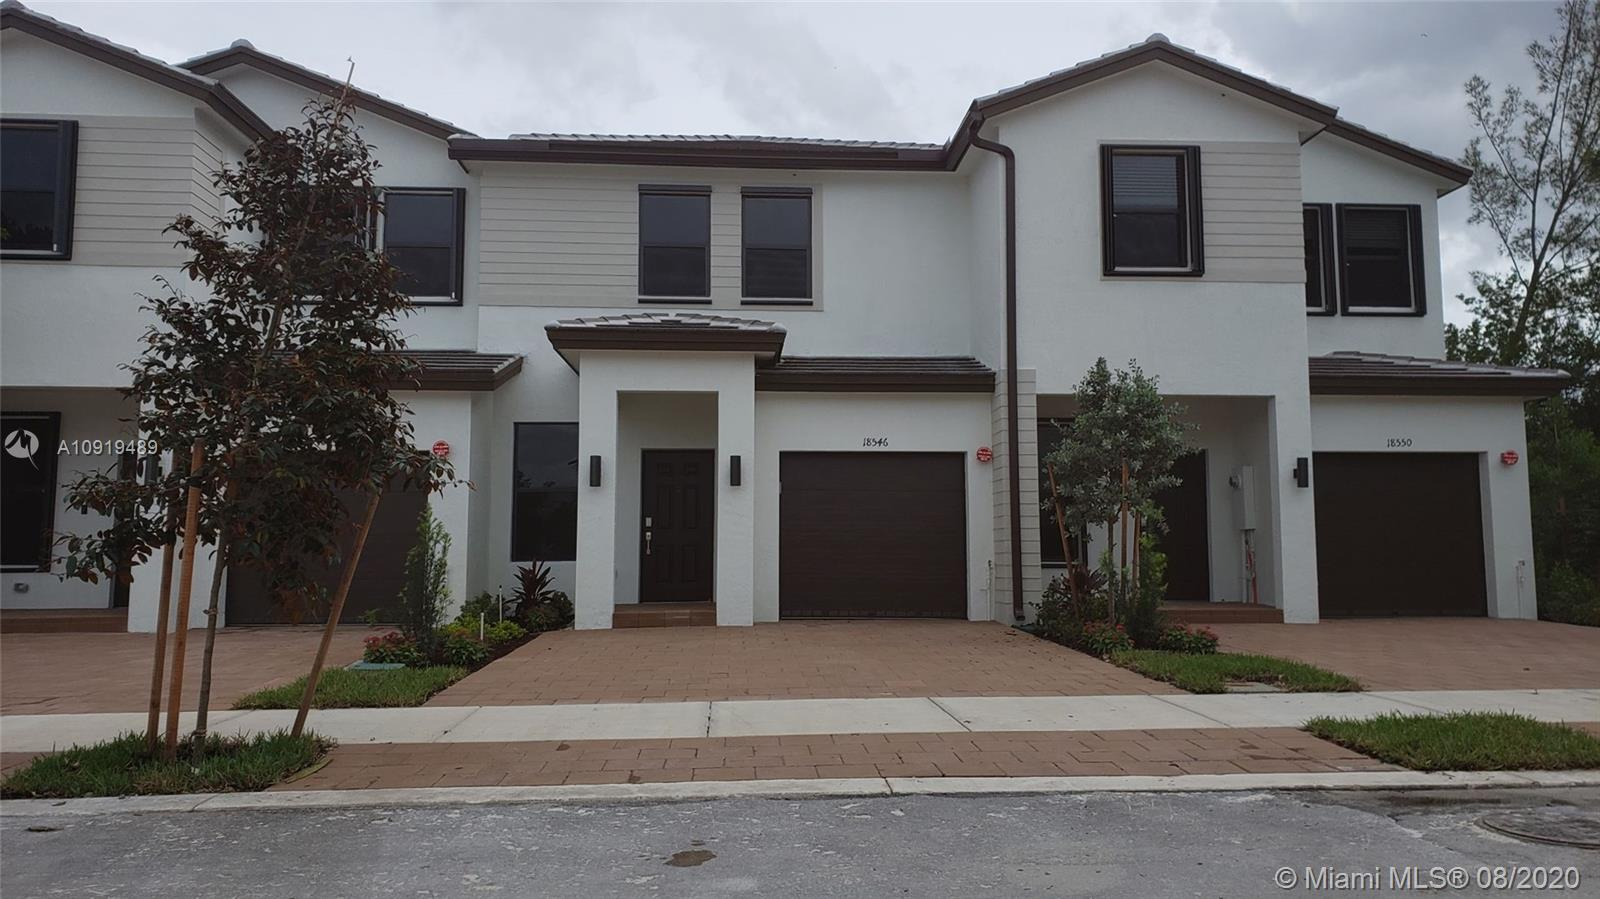 18546 SW 2nd ST # 18546, Pembroke Pines, Florida 33029, 3 Bedrooms Bedrooms, ,3 BathroomsBathrooms,Residential,For Sale,18546 SW 2nd ST # 18546,A10919489